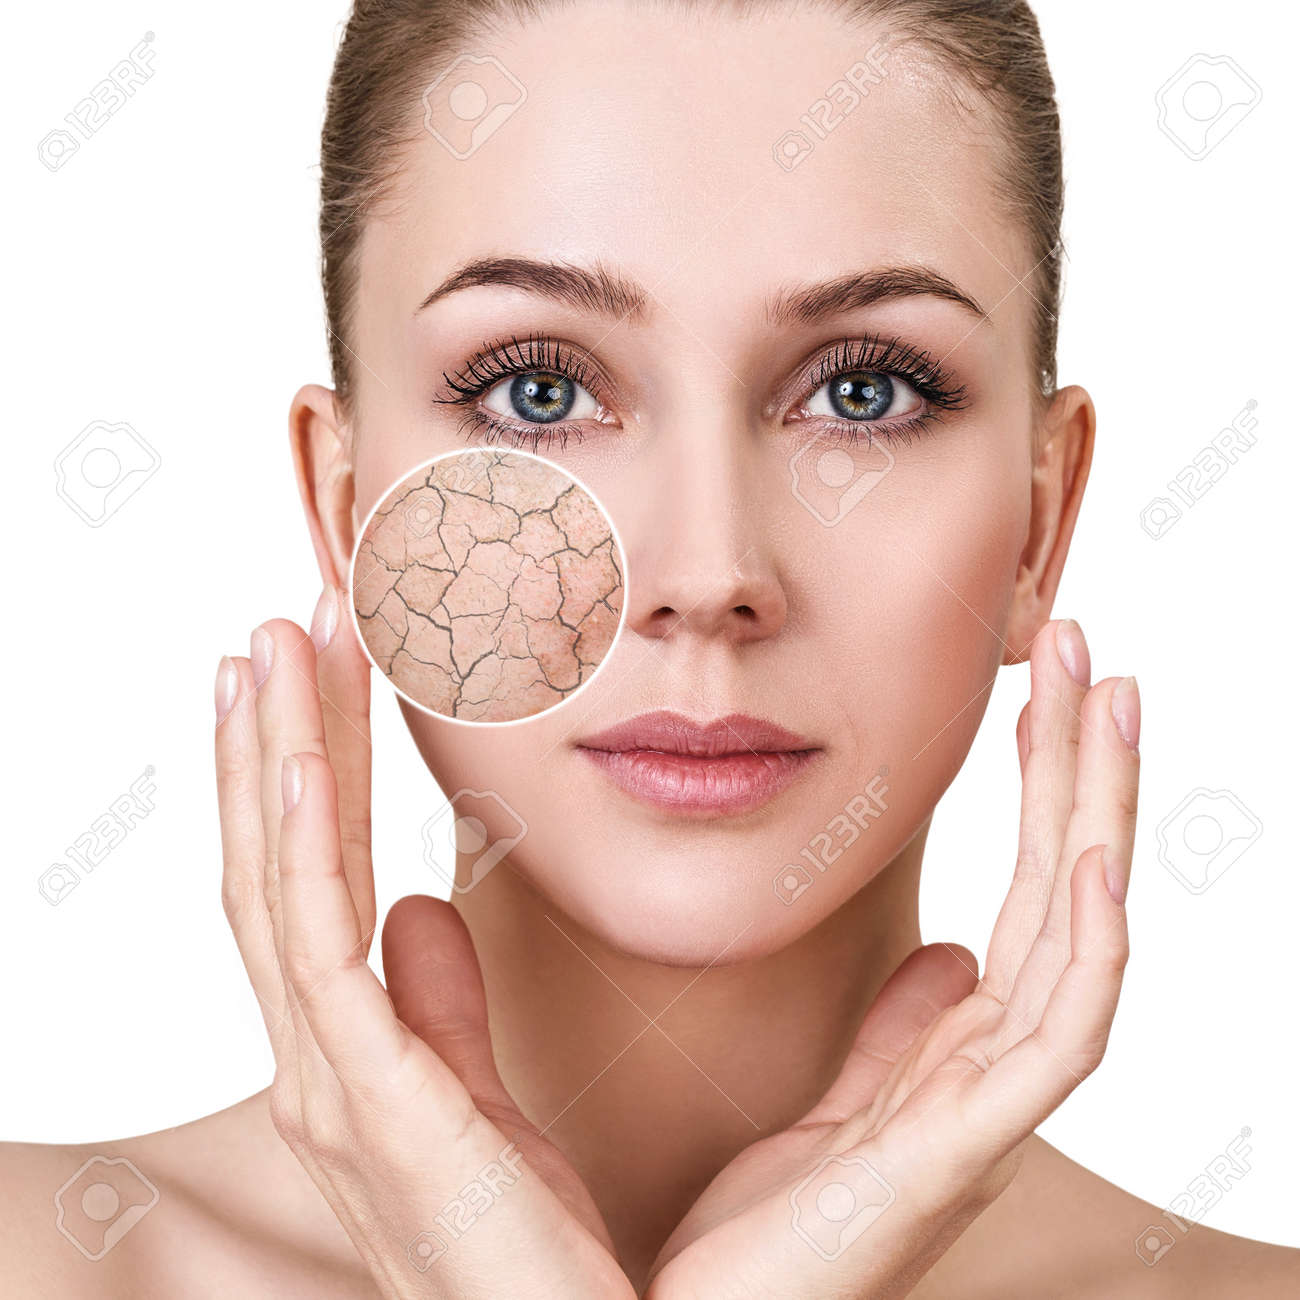 Zoom circle shows facial skin before moistening. - 94732414